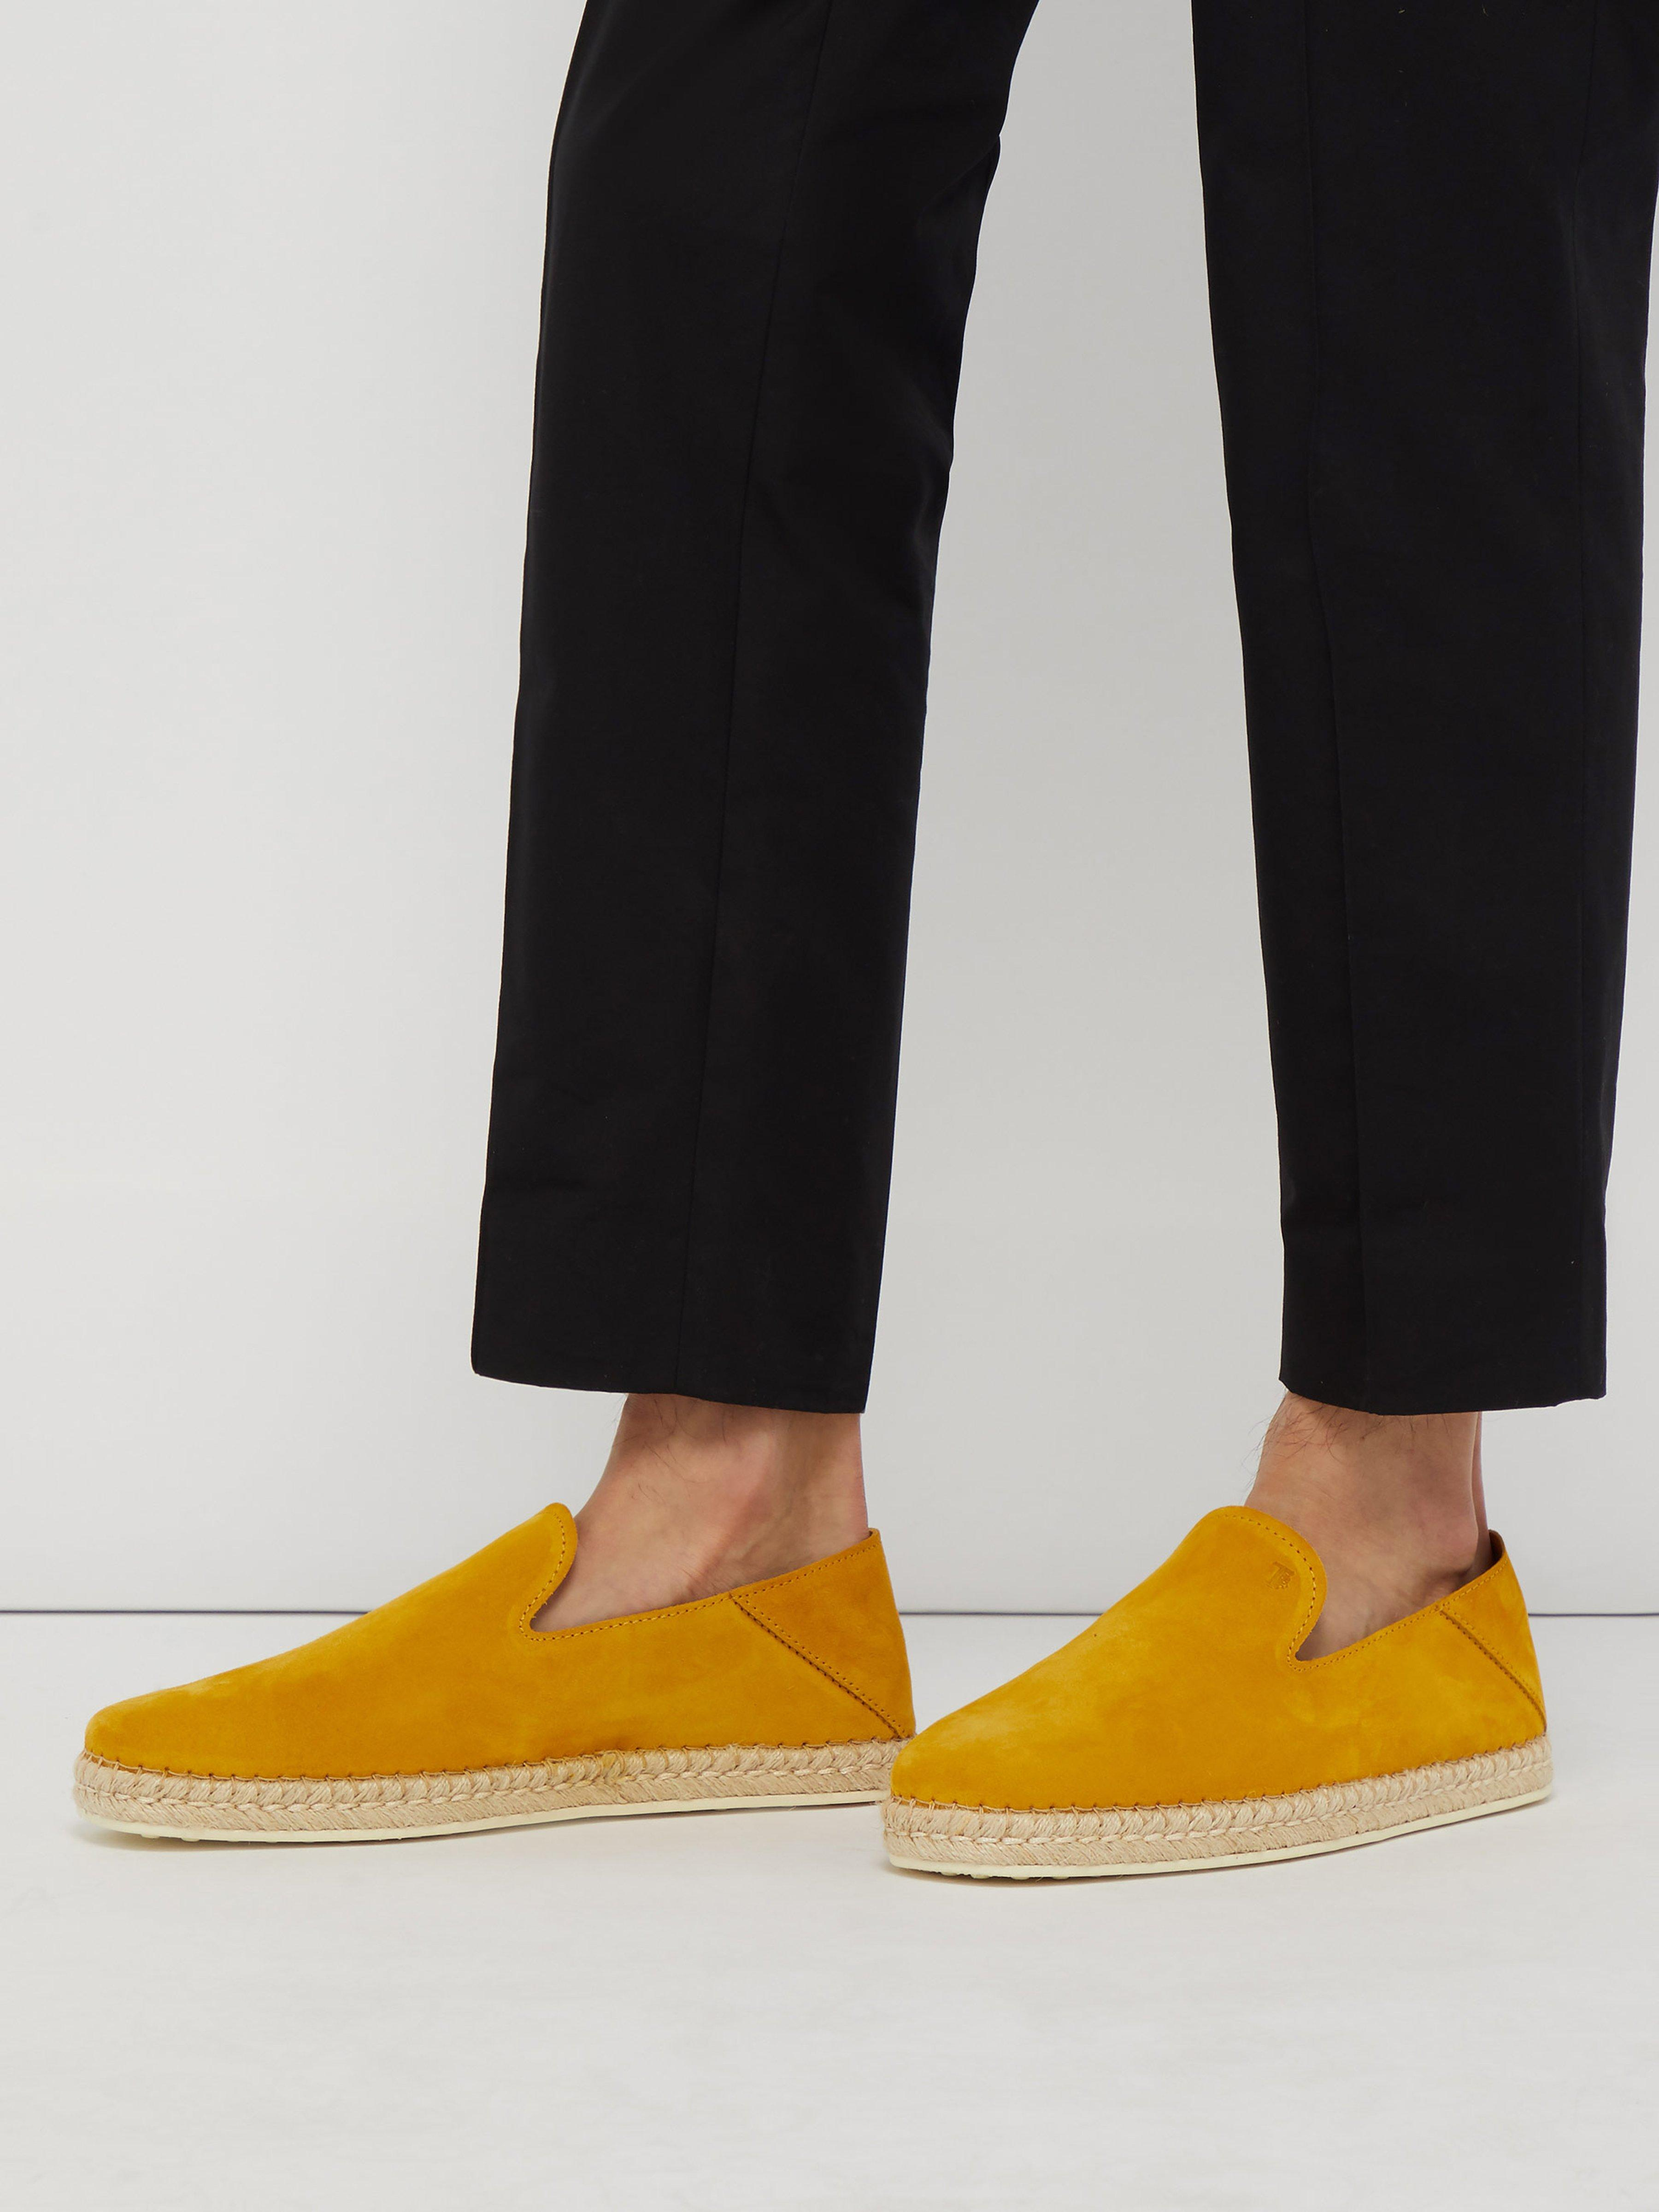 5a6674016 Tod's Collapsible Heel Suede Espadrilles in Yellow for Men - Lyst